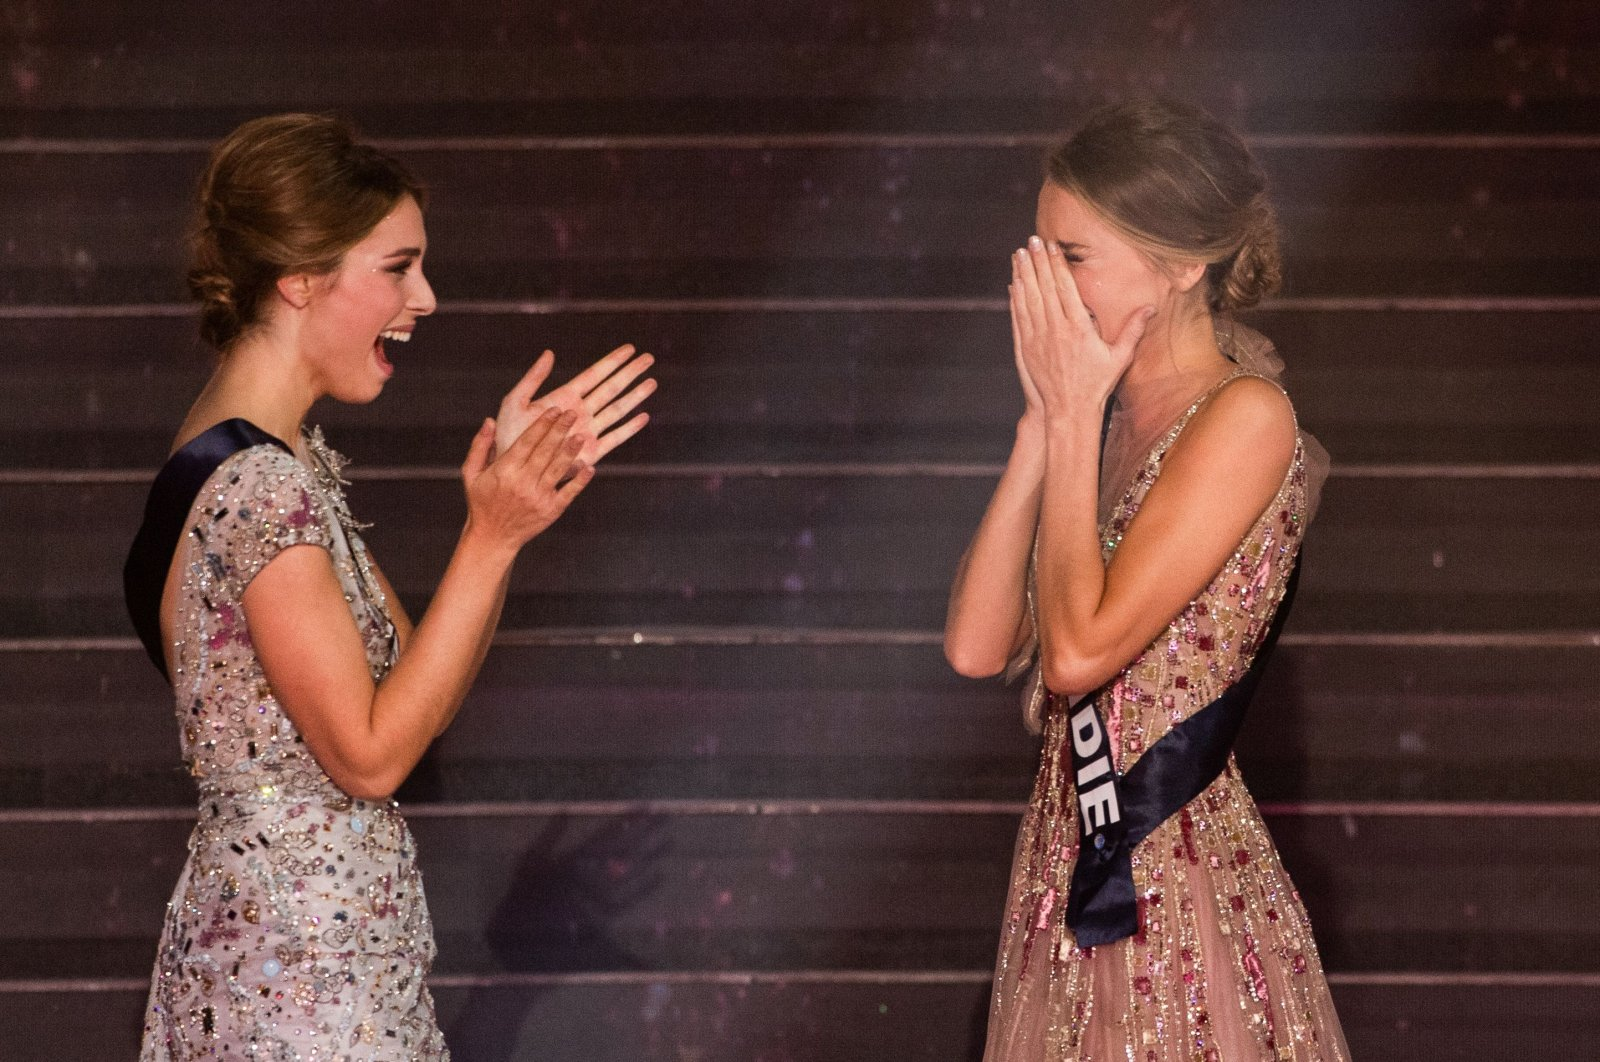 Newly elected Miss France 2021 Miss Normandie Amandine Petit (R) cries in front of Miss Provence April Benayoum at the end of the Miss France 2021 beauty contest at the Puy-du-Fou, in Les Epesses, western France, on Dec. 20, 2020. (AFP Photo)